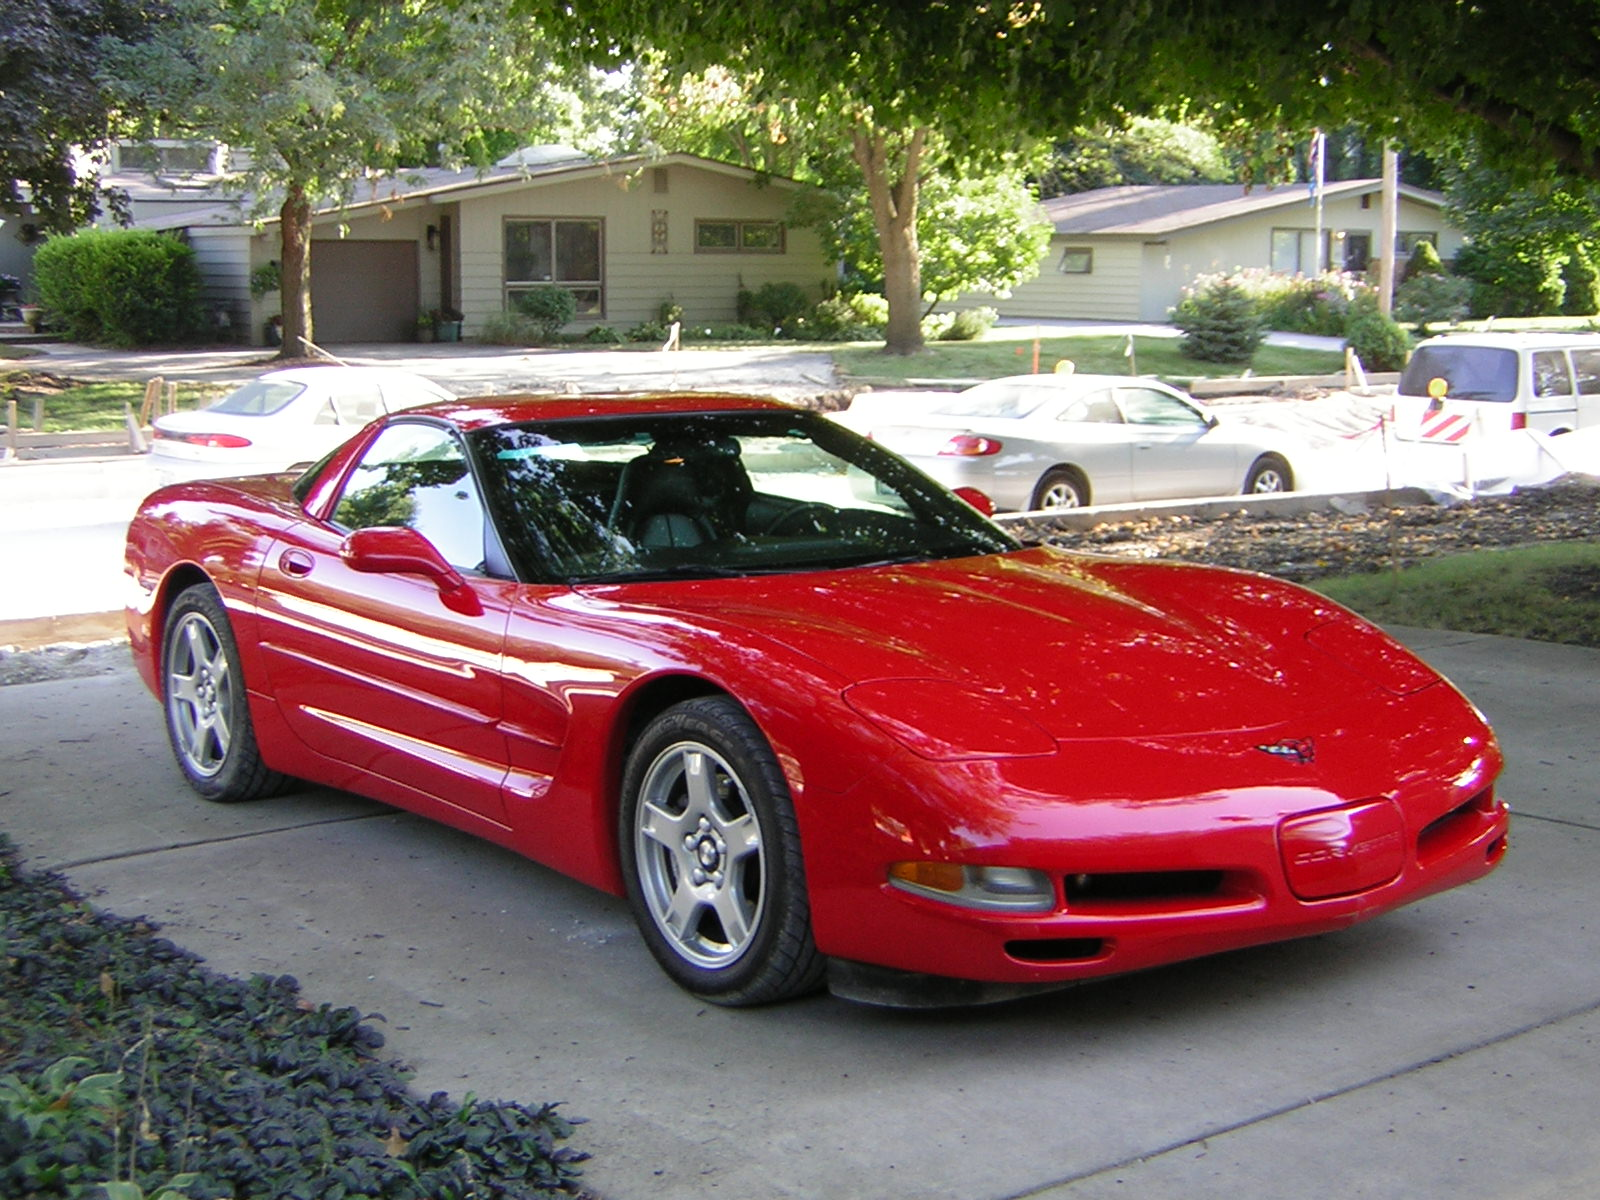 Chevrolet Corvette 2003 photo - 4